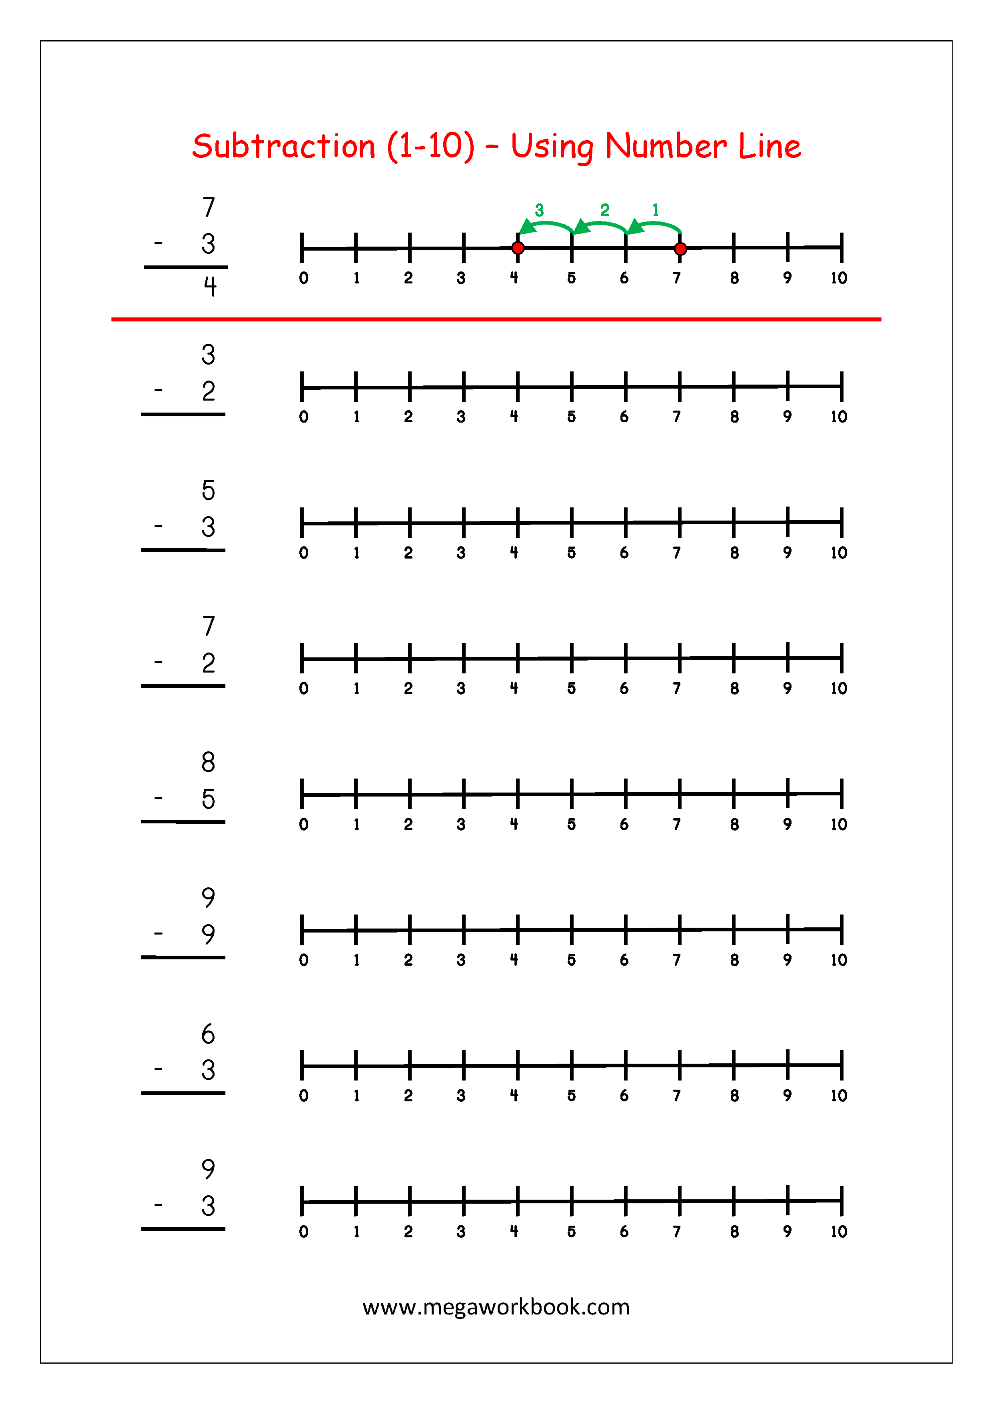 subtraction using number line maths worksheets for kindergarten subtraction worksheets free. Black Bedroom Furniture Sets. Home Design Ideas